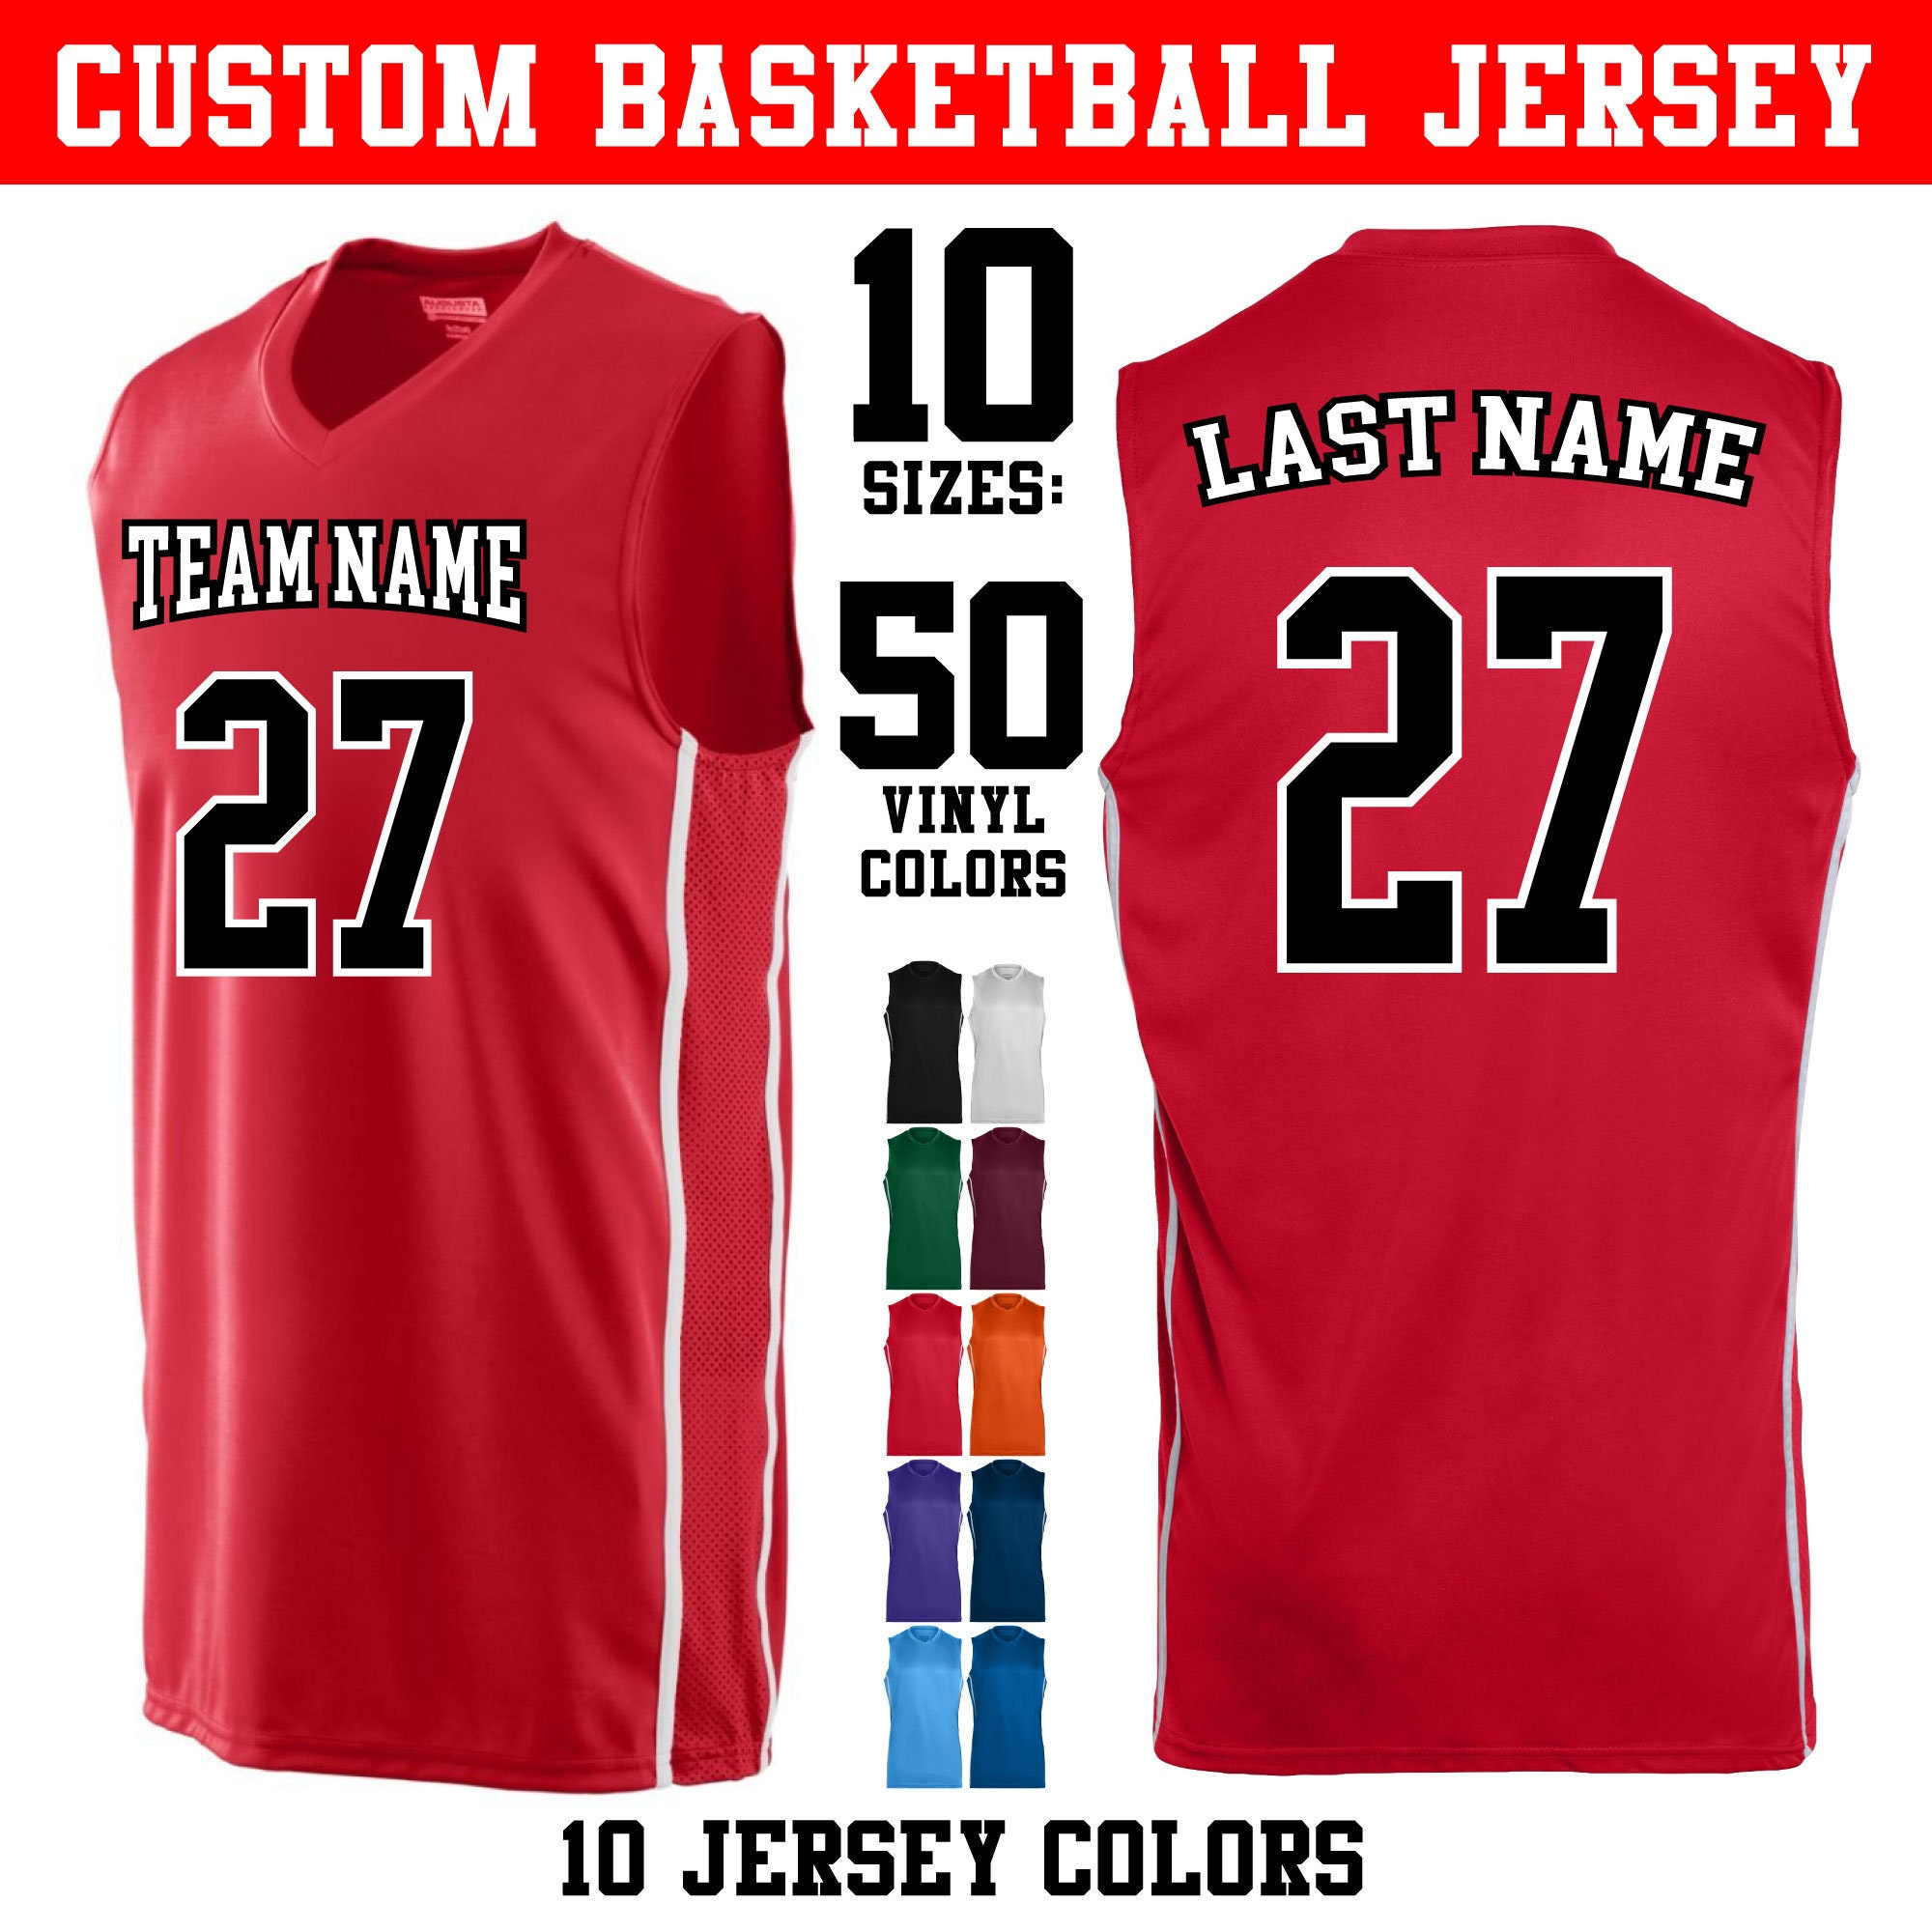 Custom 2 Color Basketball Jerseys In Adult And Youth Sizes 10 Etsy